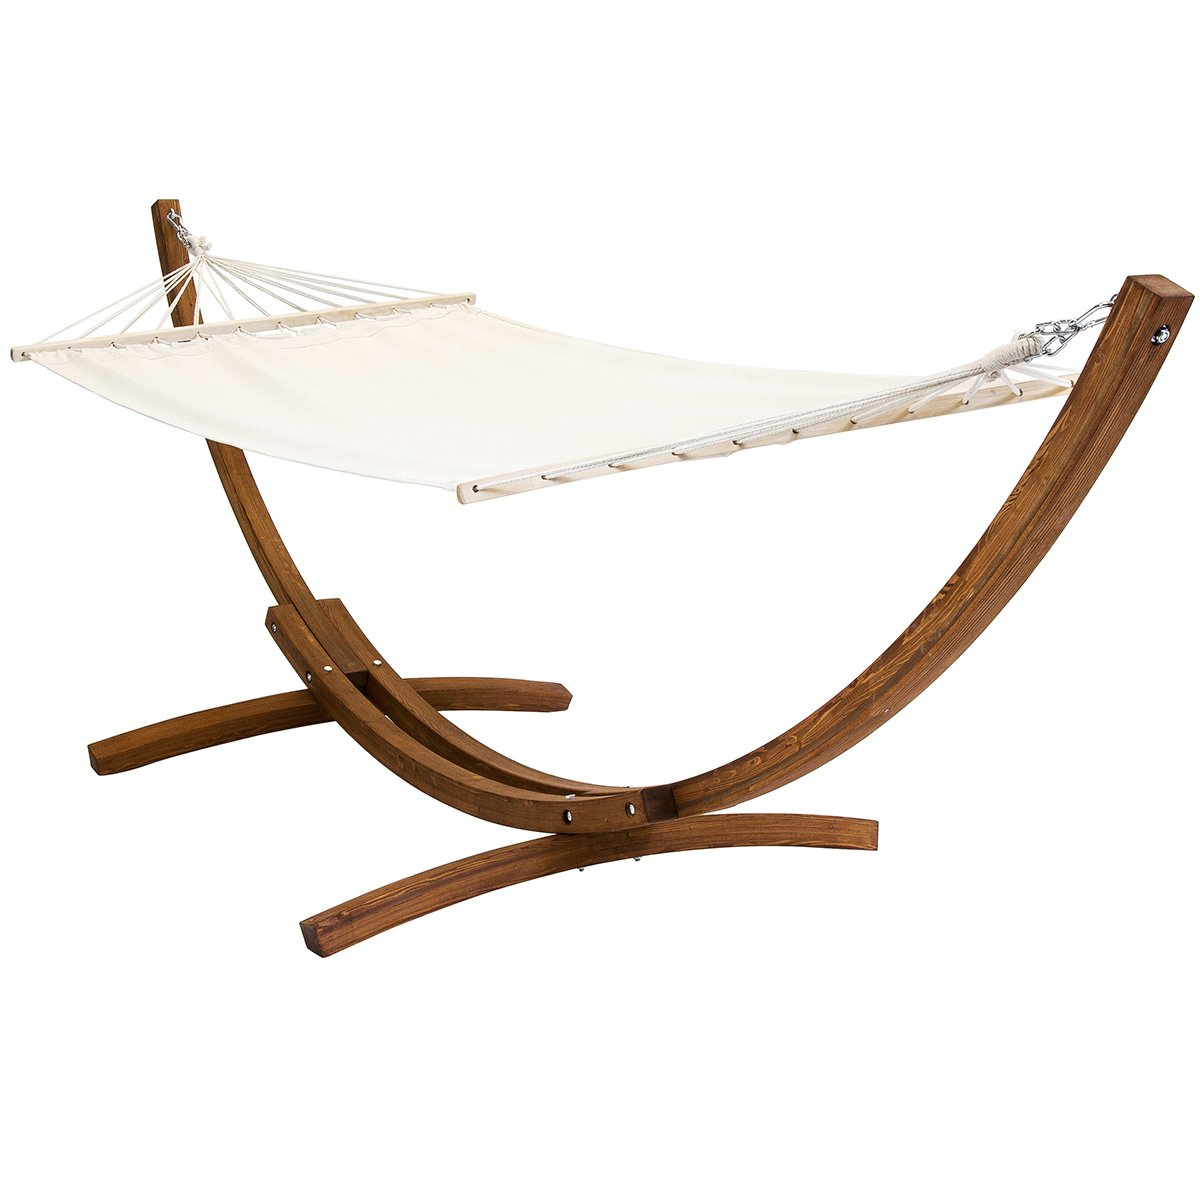 Free Standing Cream Canvas Garden Hammock With Wooden Arc Stand Charles Bentley